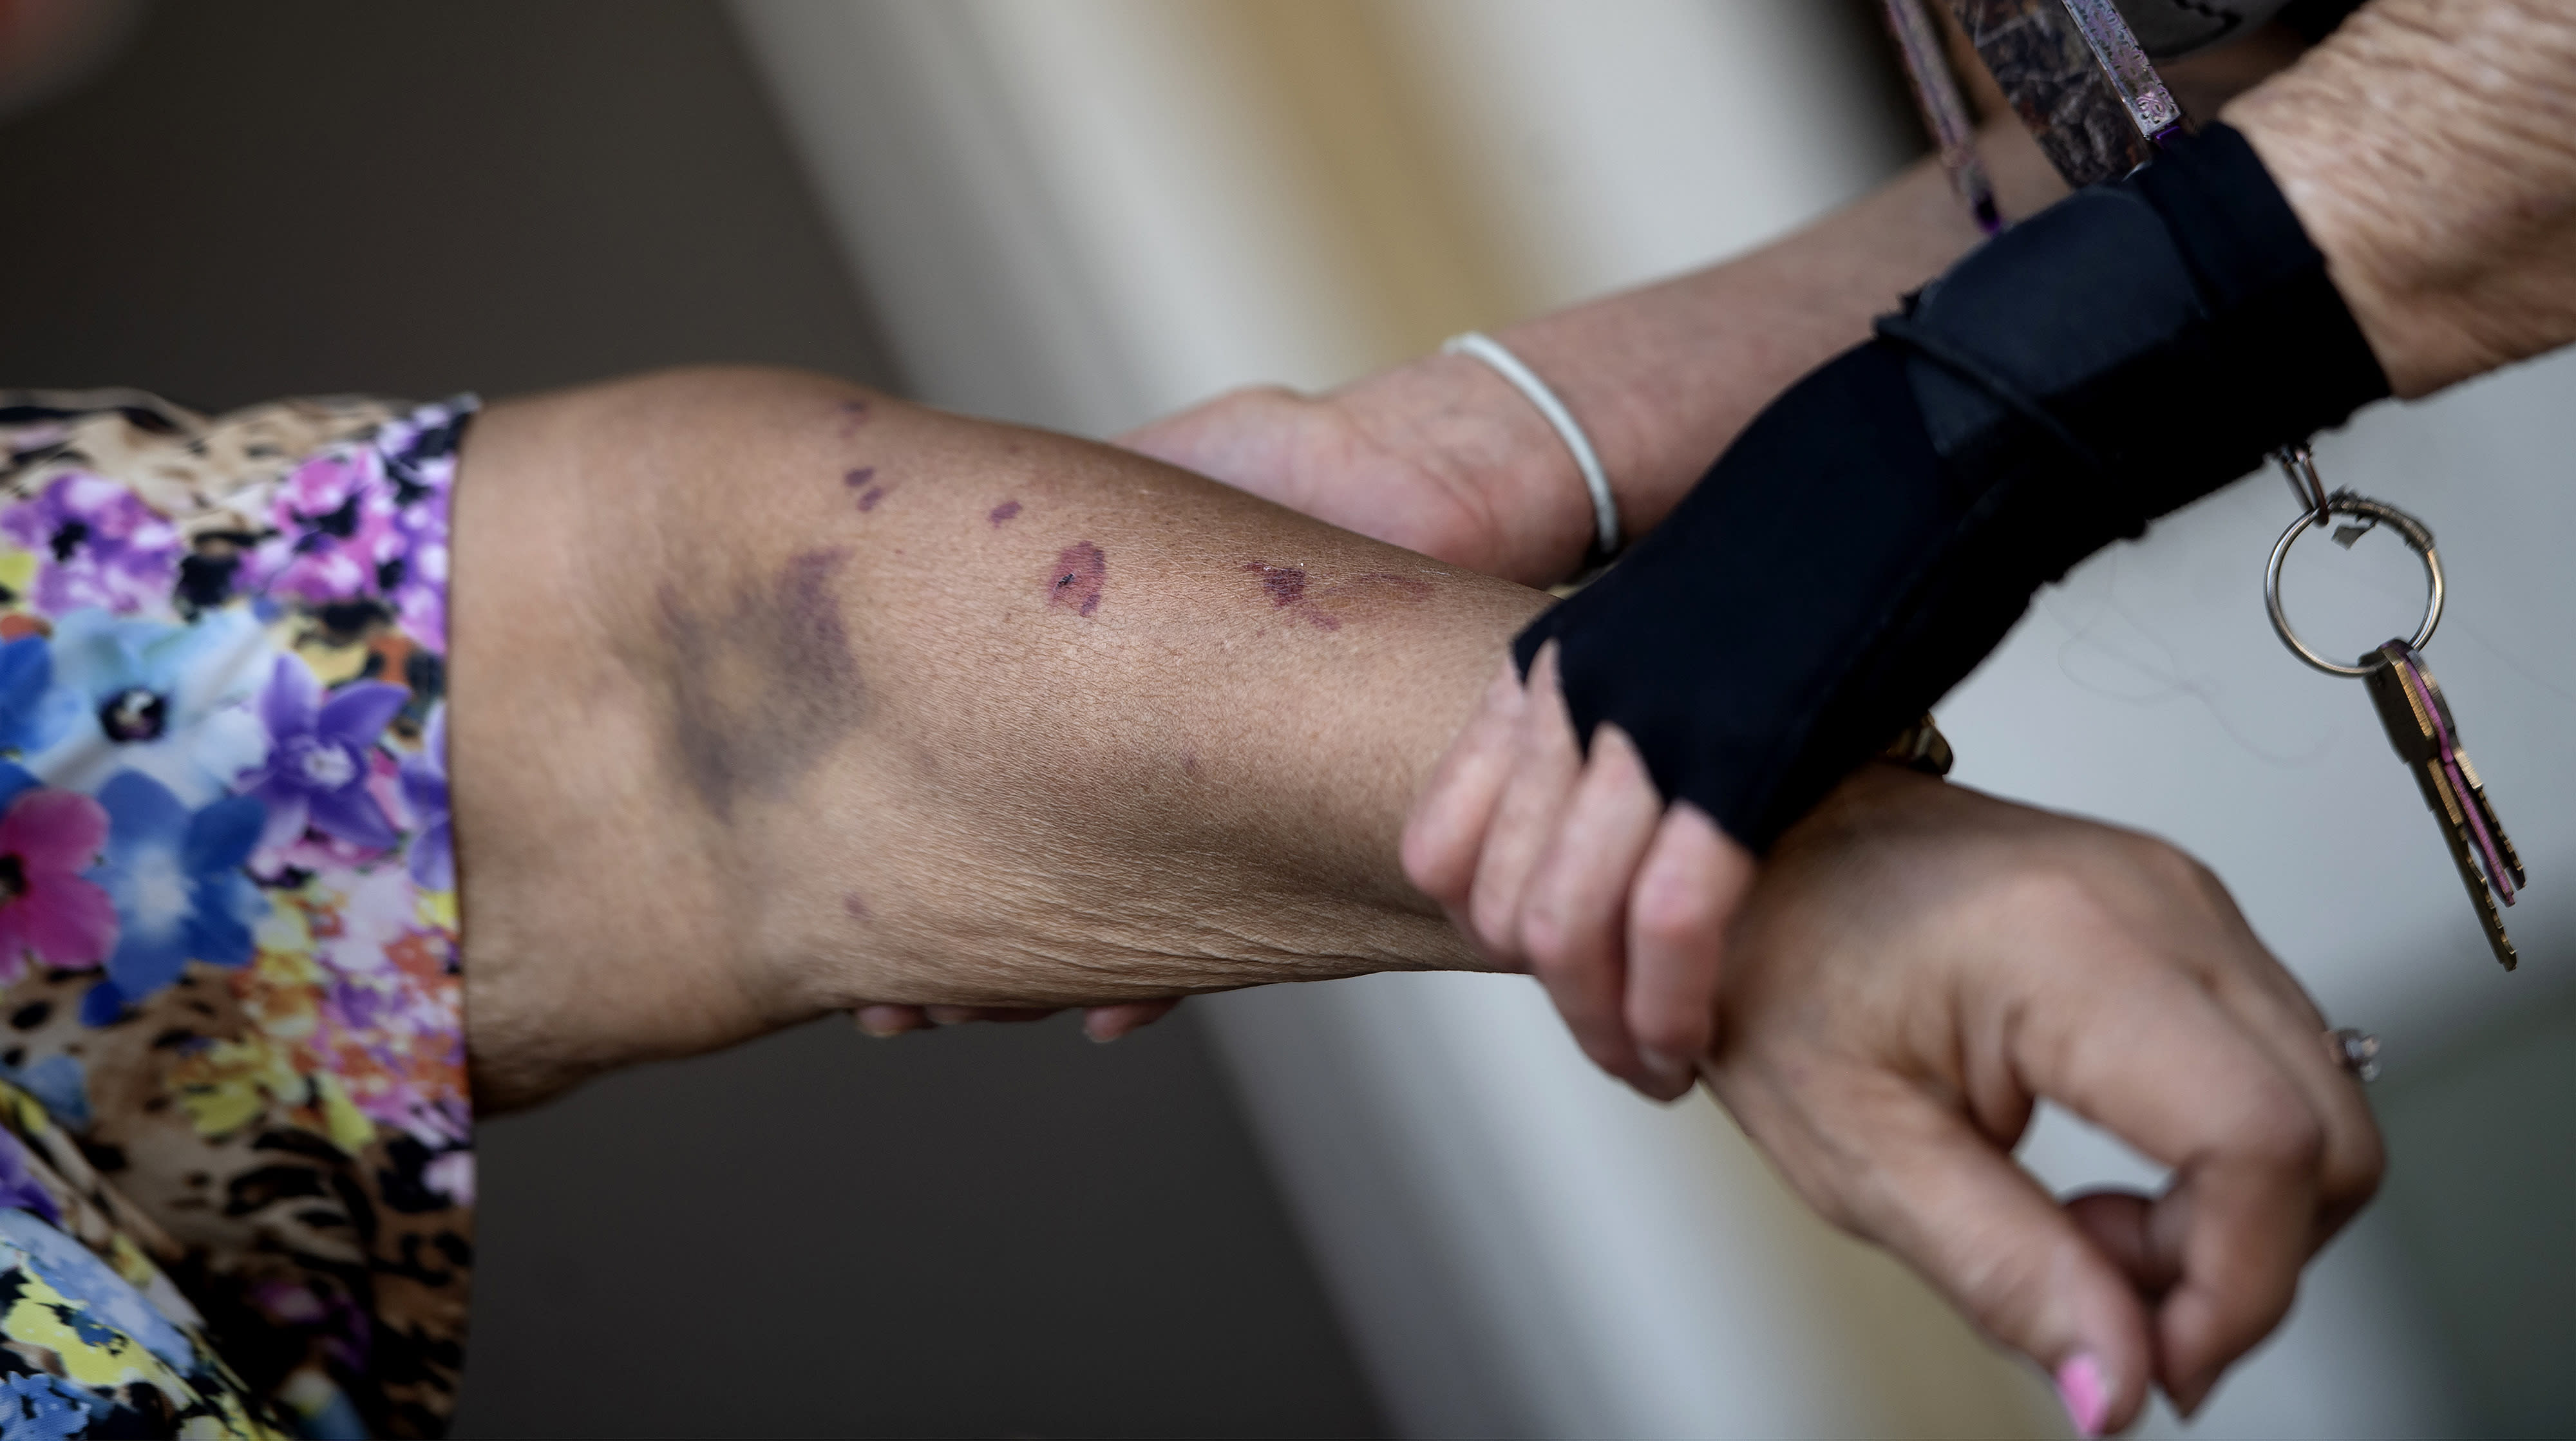 Elizabeth McCray, left, 87, recounts how her daughter's ex-boyfriend bit and bruised her arm in her Fontana, Calif., apartment home on Wednesday, Sept. 30, 2020. A friend Lorenza Marrujo came to her rescue. (Cindy Yamanaka/The Orange County Register/SCNG via AP)